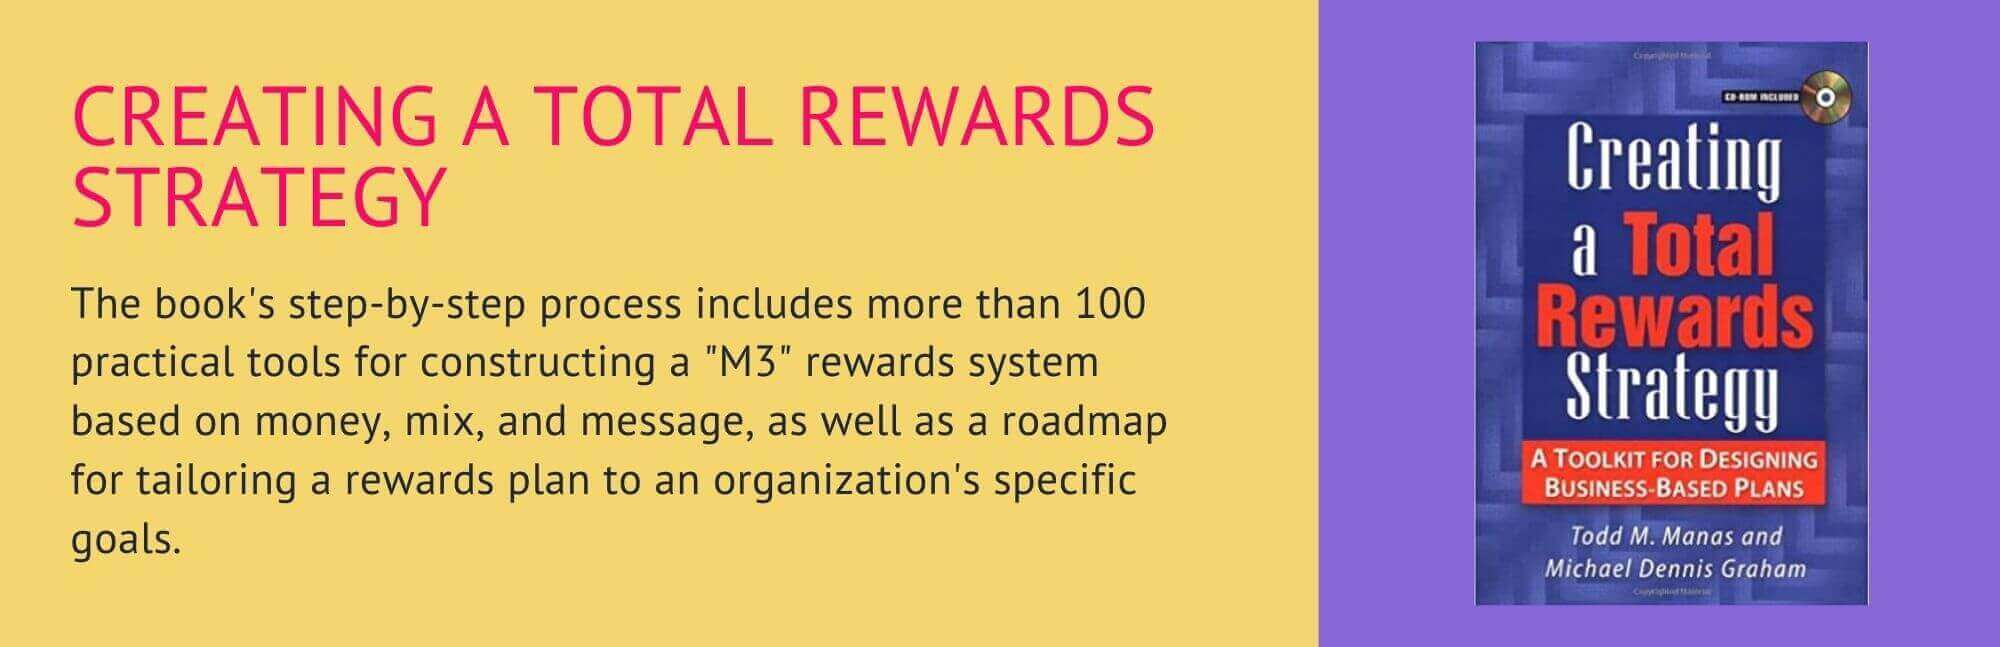 Creating-a-total-rewards-strategy-book-by-todd-M.-manas